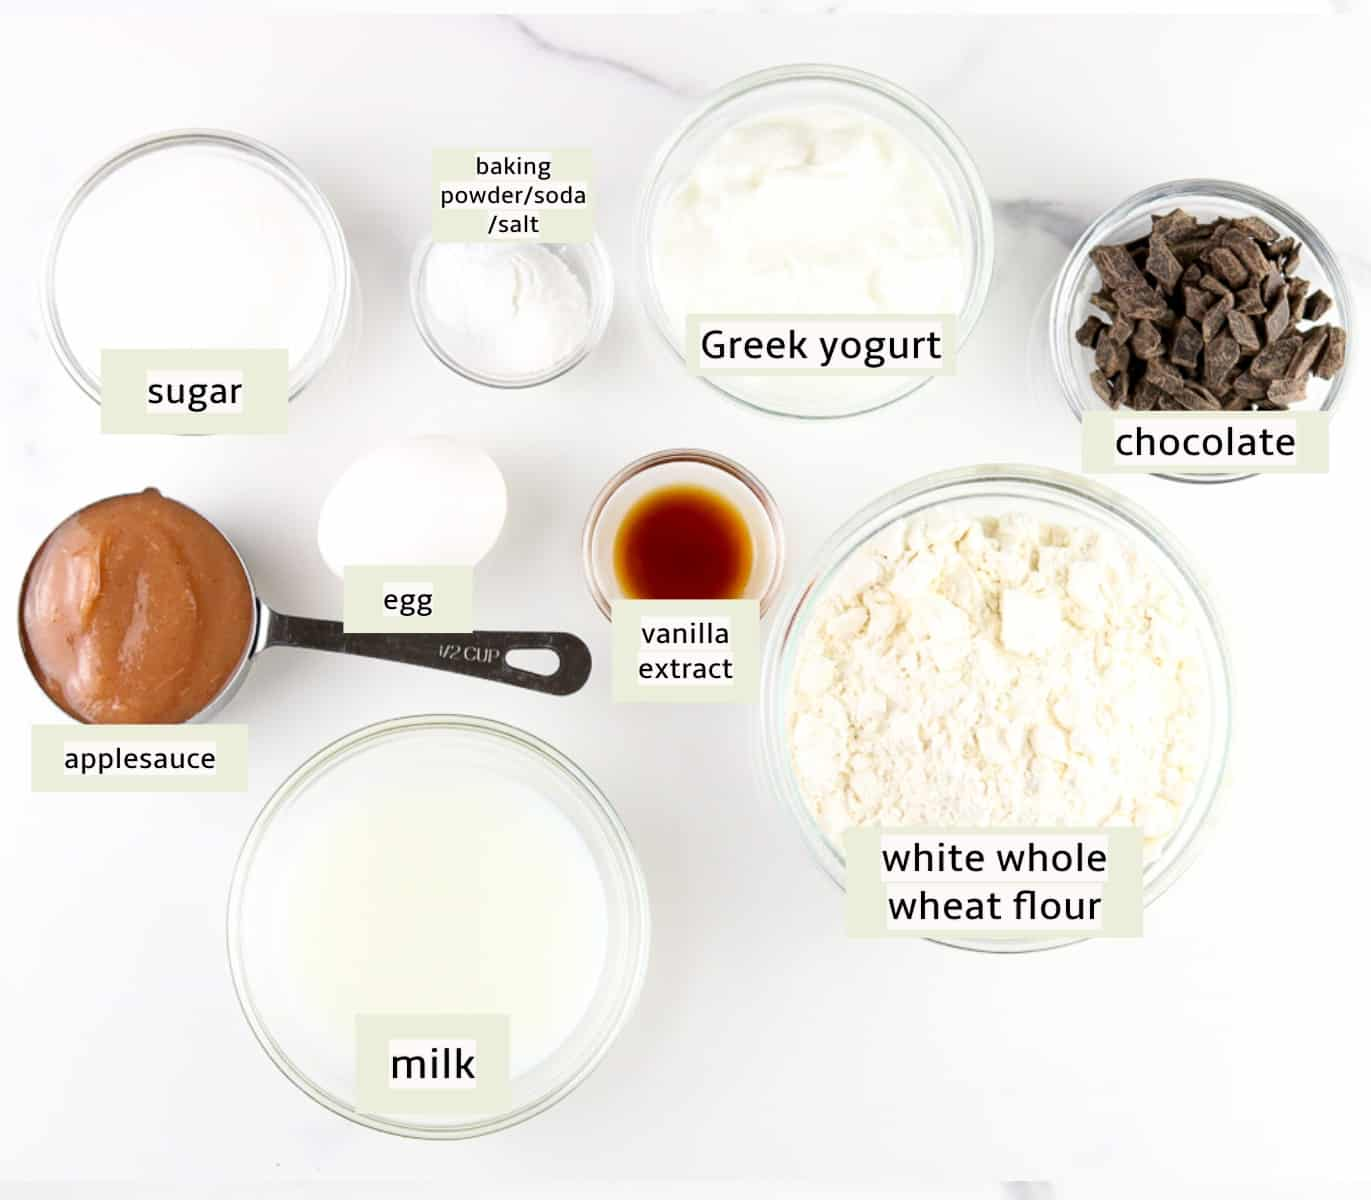 Image of ingredients needed to make chocolate chip muffins.